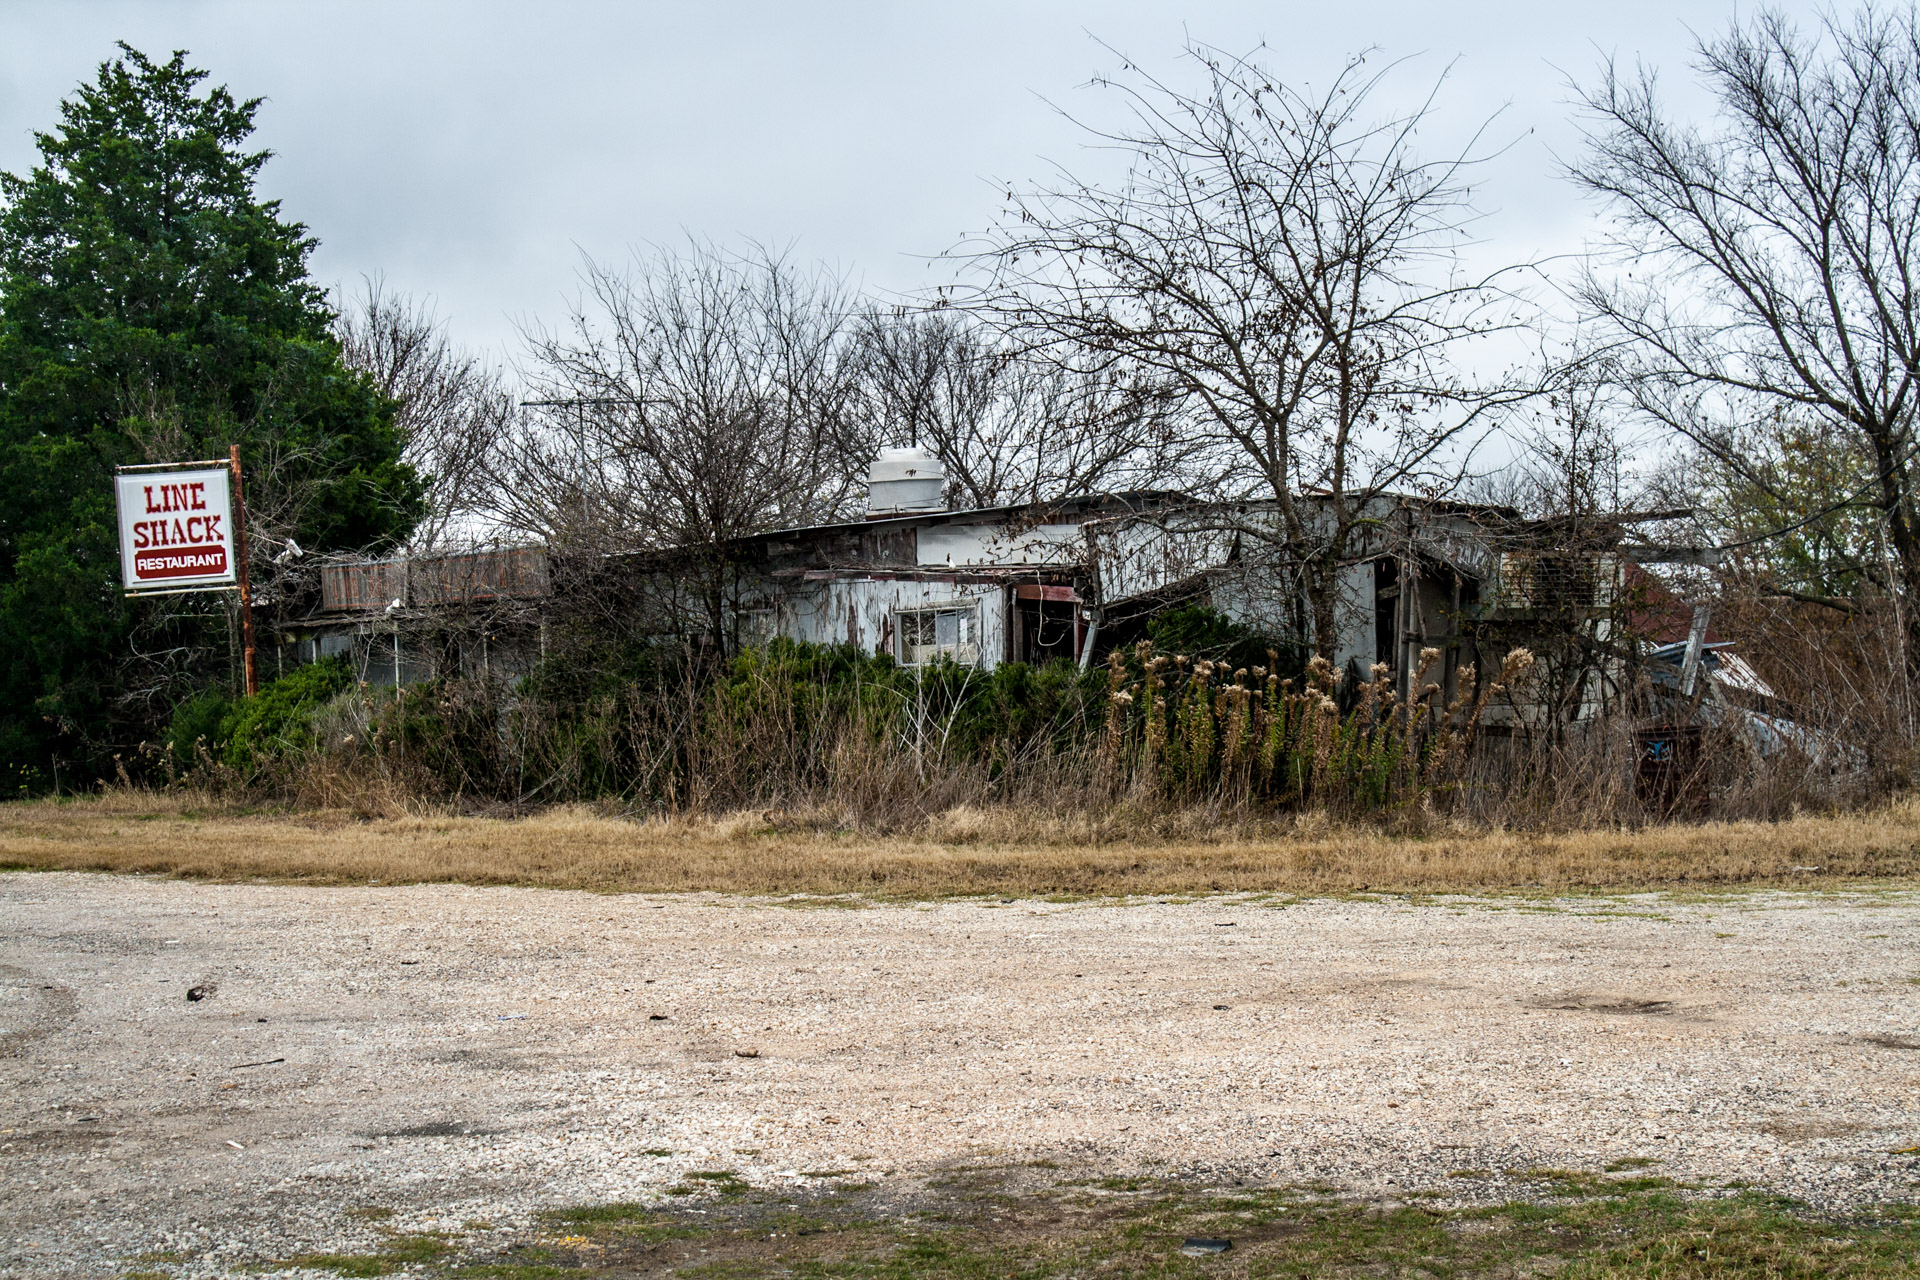 Buckholts, Texas - The Line Shack Restaurant (front mid)